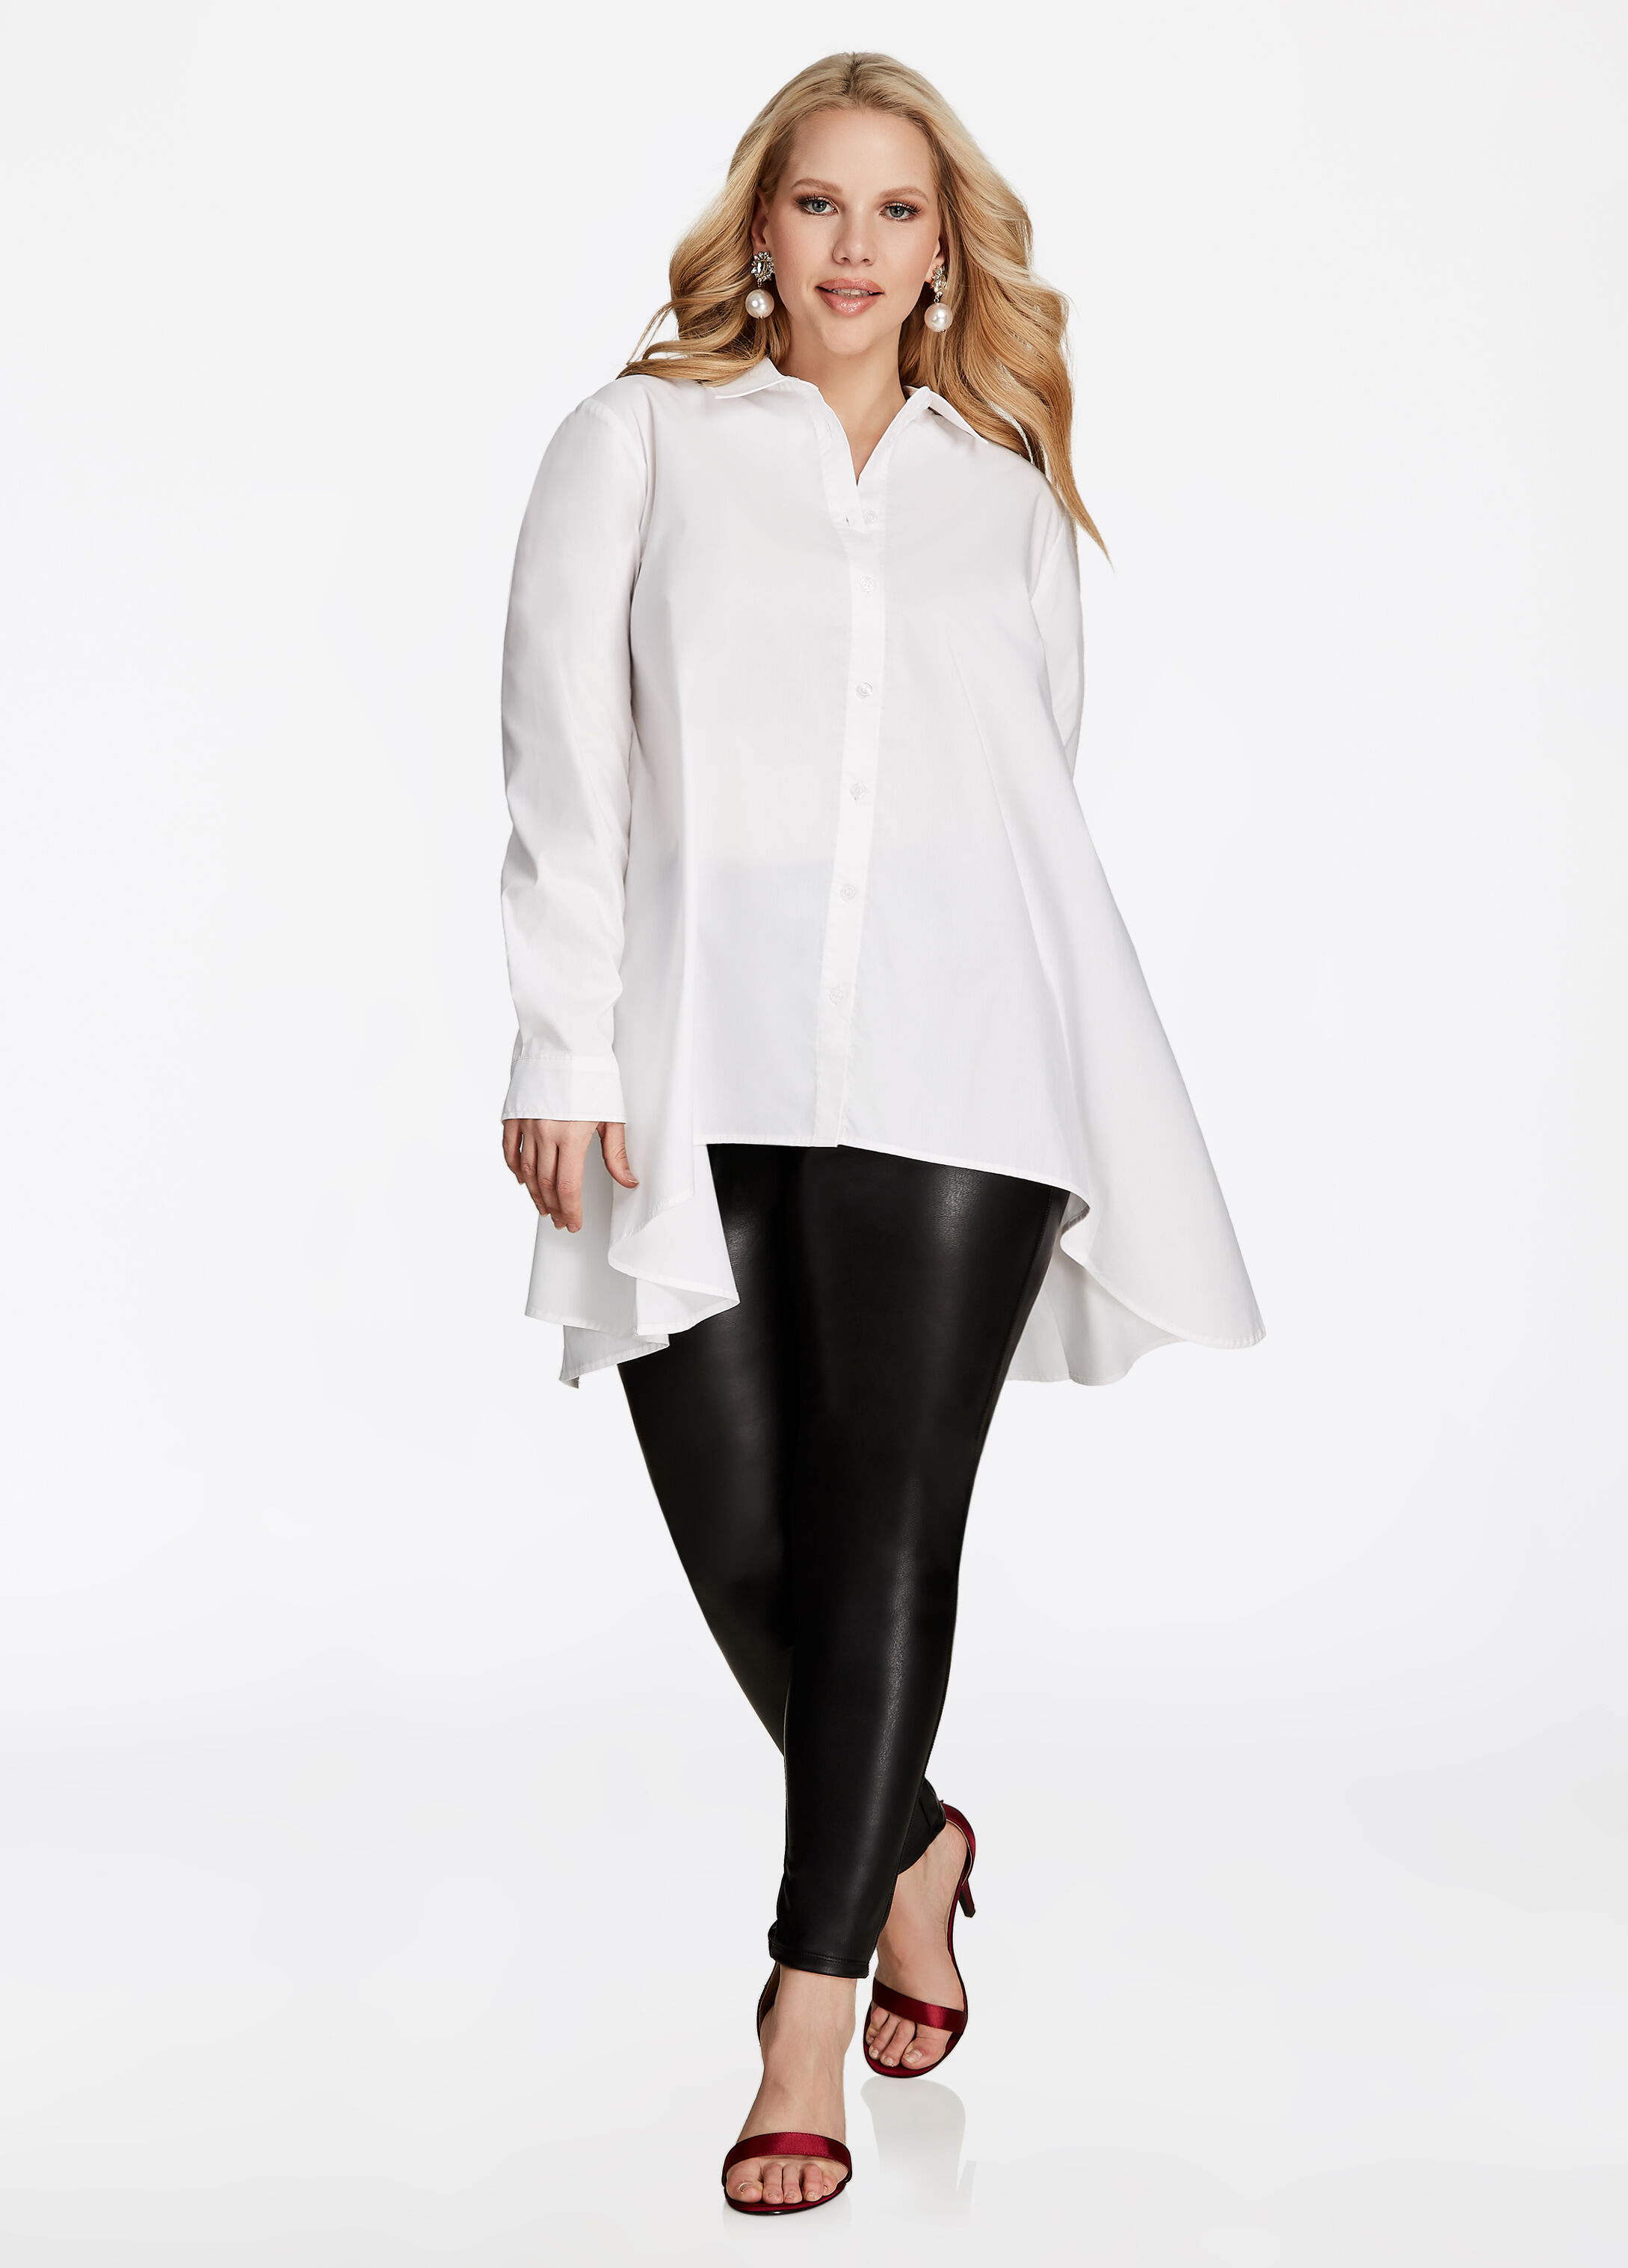 new arrivals  plus size clothing  trendy clothes ǀ